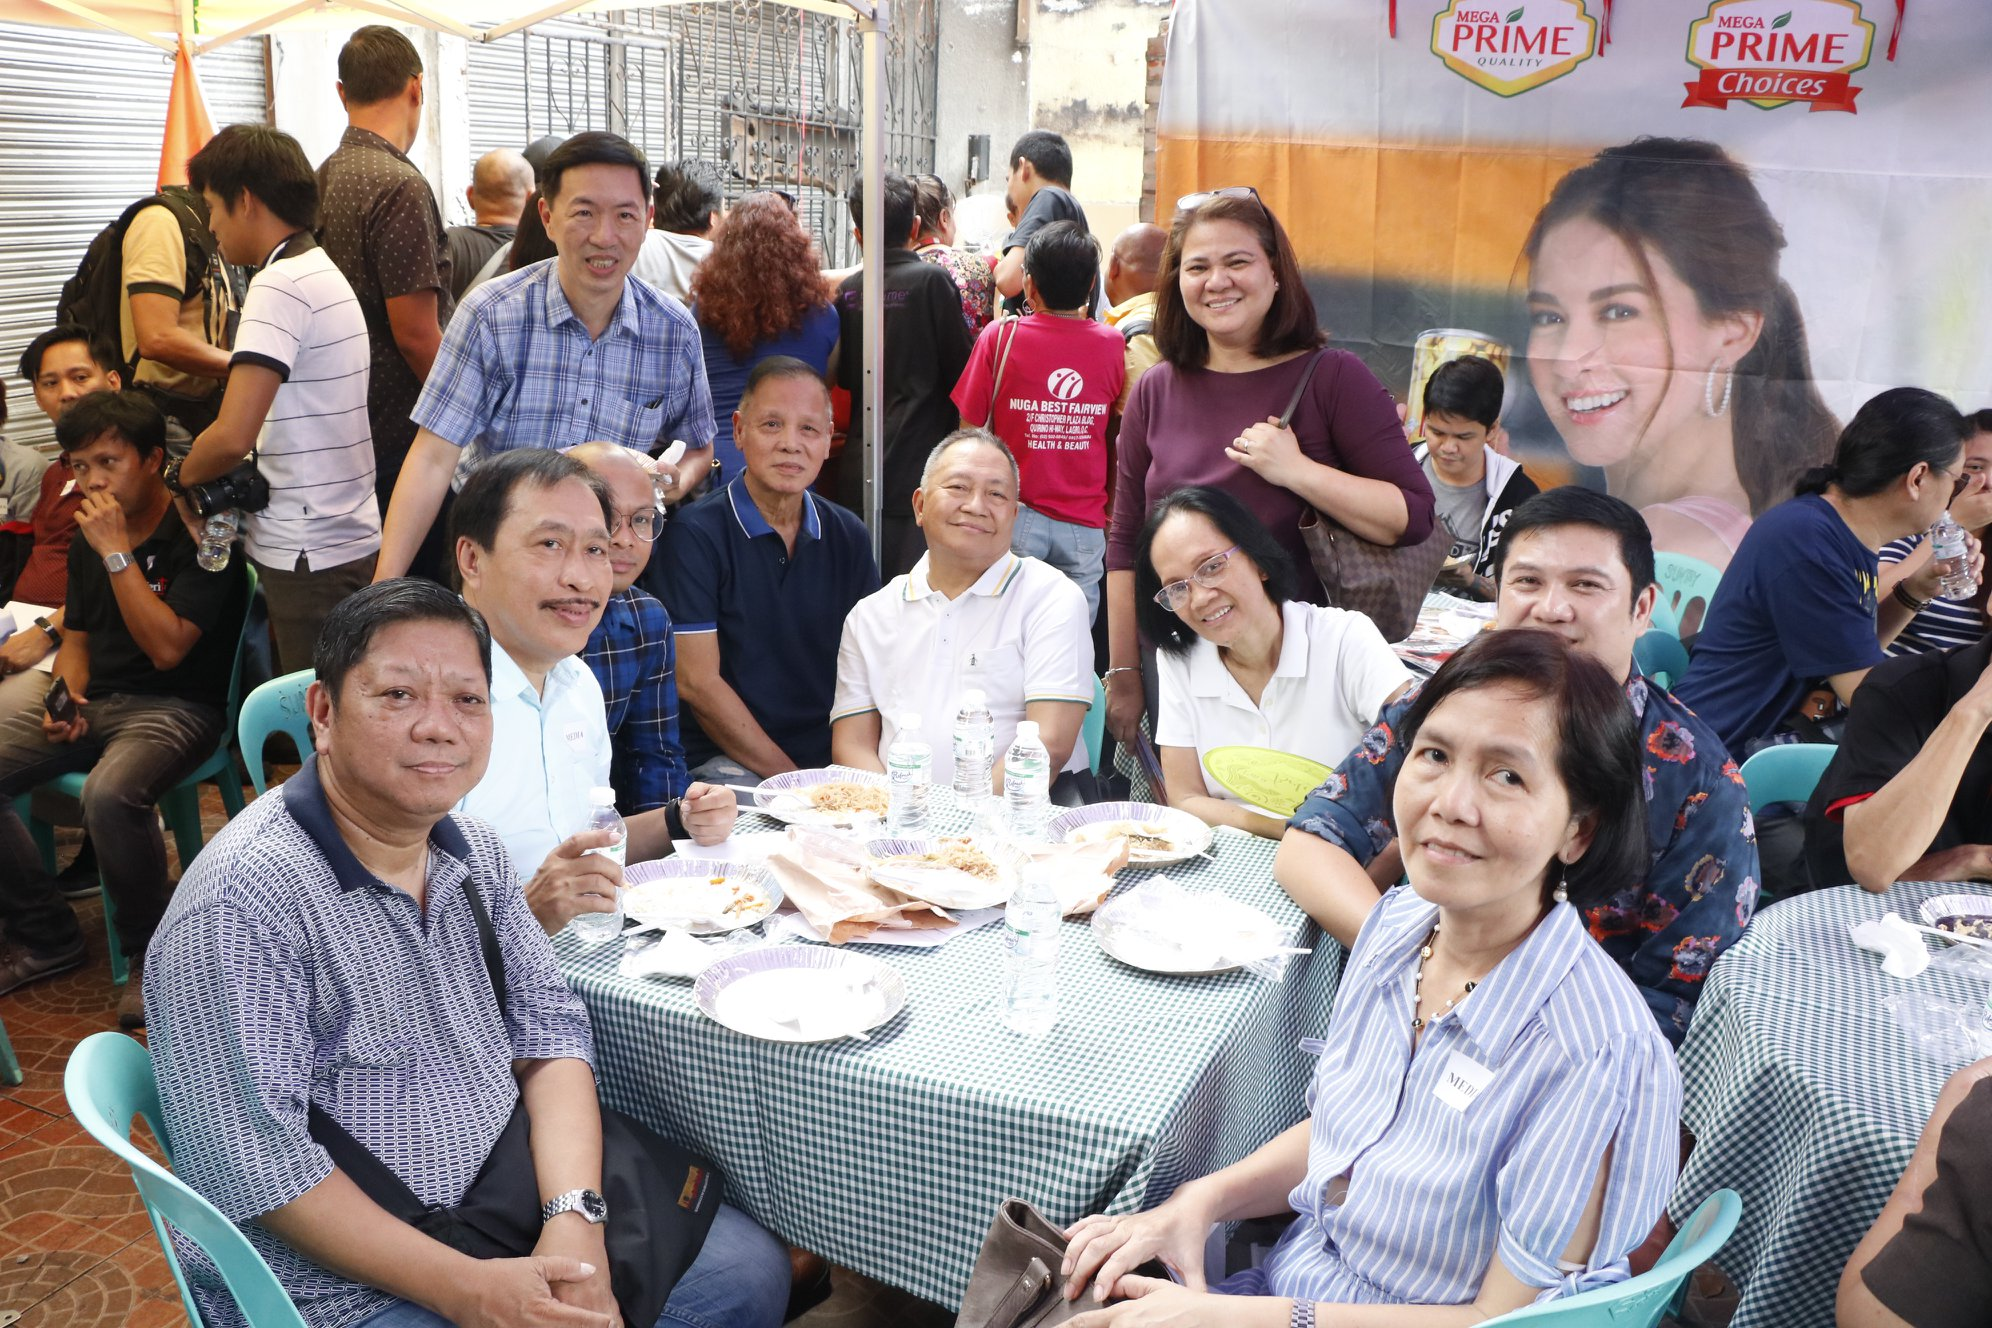 Flores with members of the press that came to celebrate World Pandesal Day with him (clockwise) Ricky Calderon, Eugene Asis, Nickie Wang Flores, Remy Umerez, Isah V. Red, Shirley Pizarro,  Nitz Miralles, Jojo Panaligan, and Maridol Ranoa